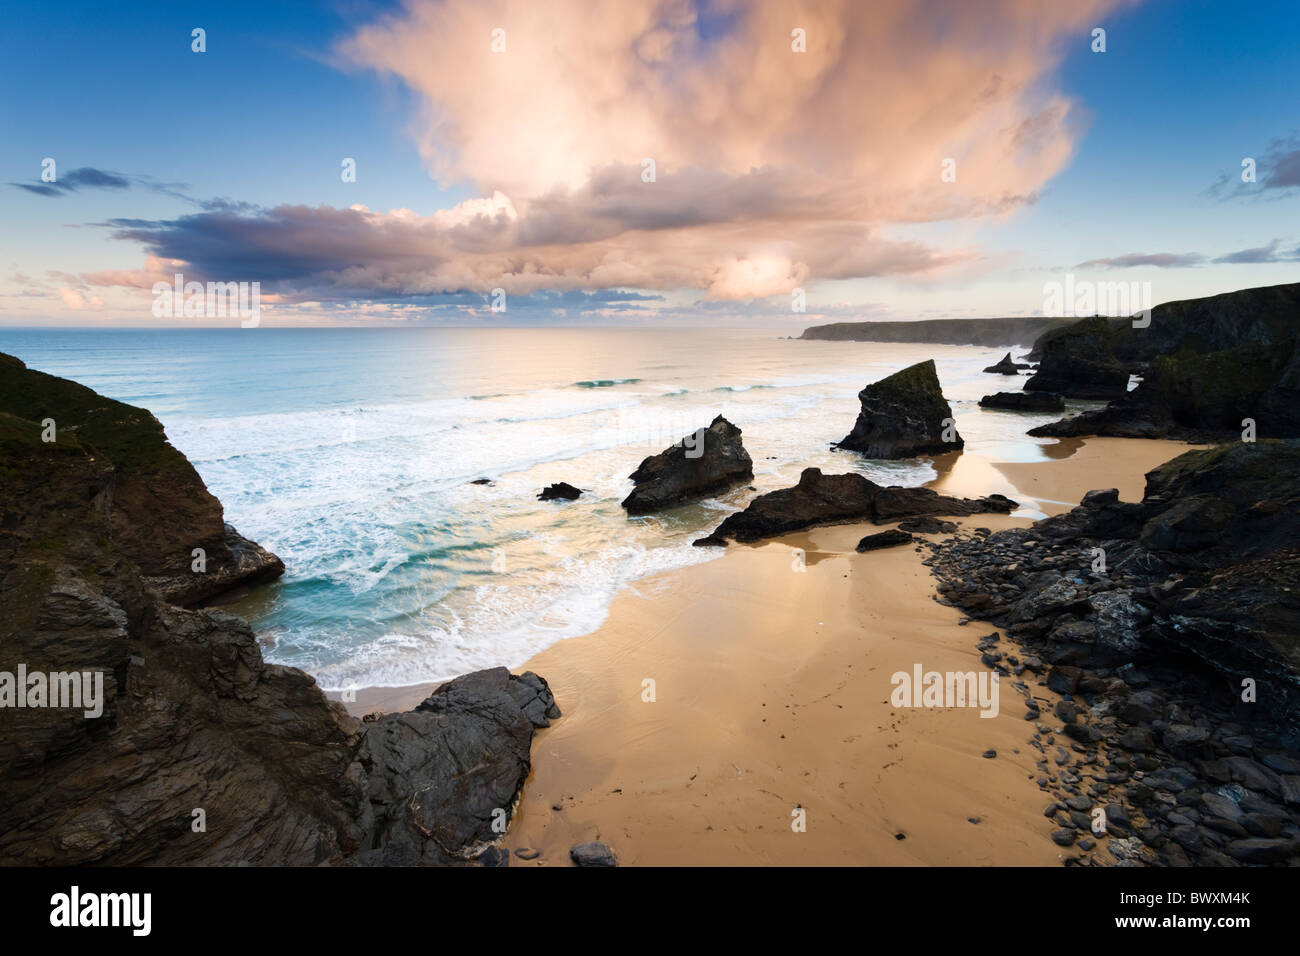 Bedruthan steps, Cornwall, UK Photo Stock